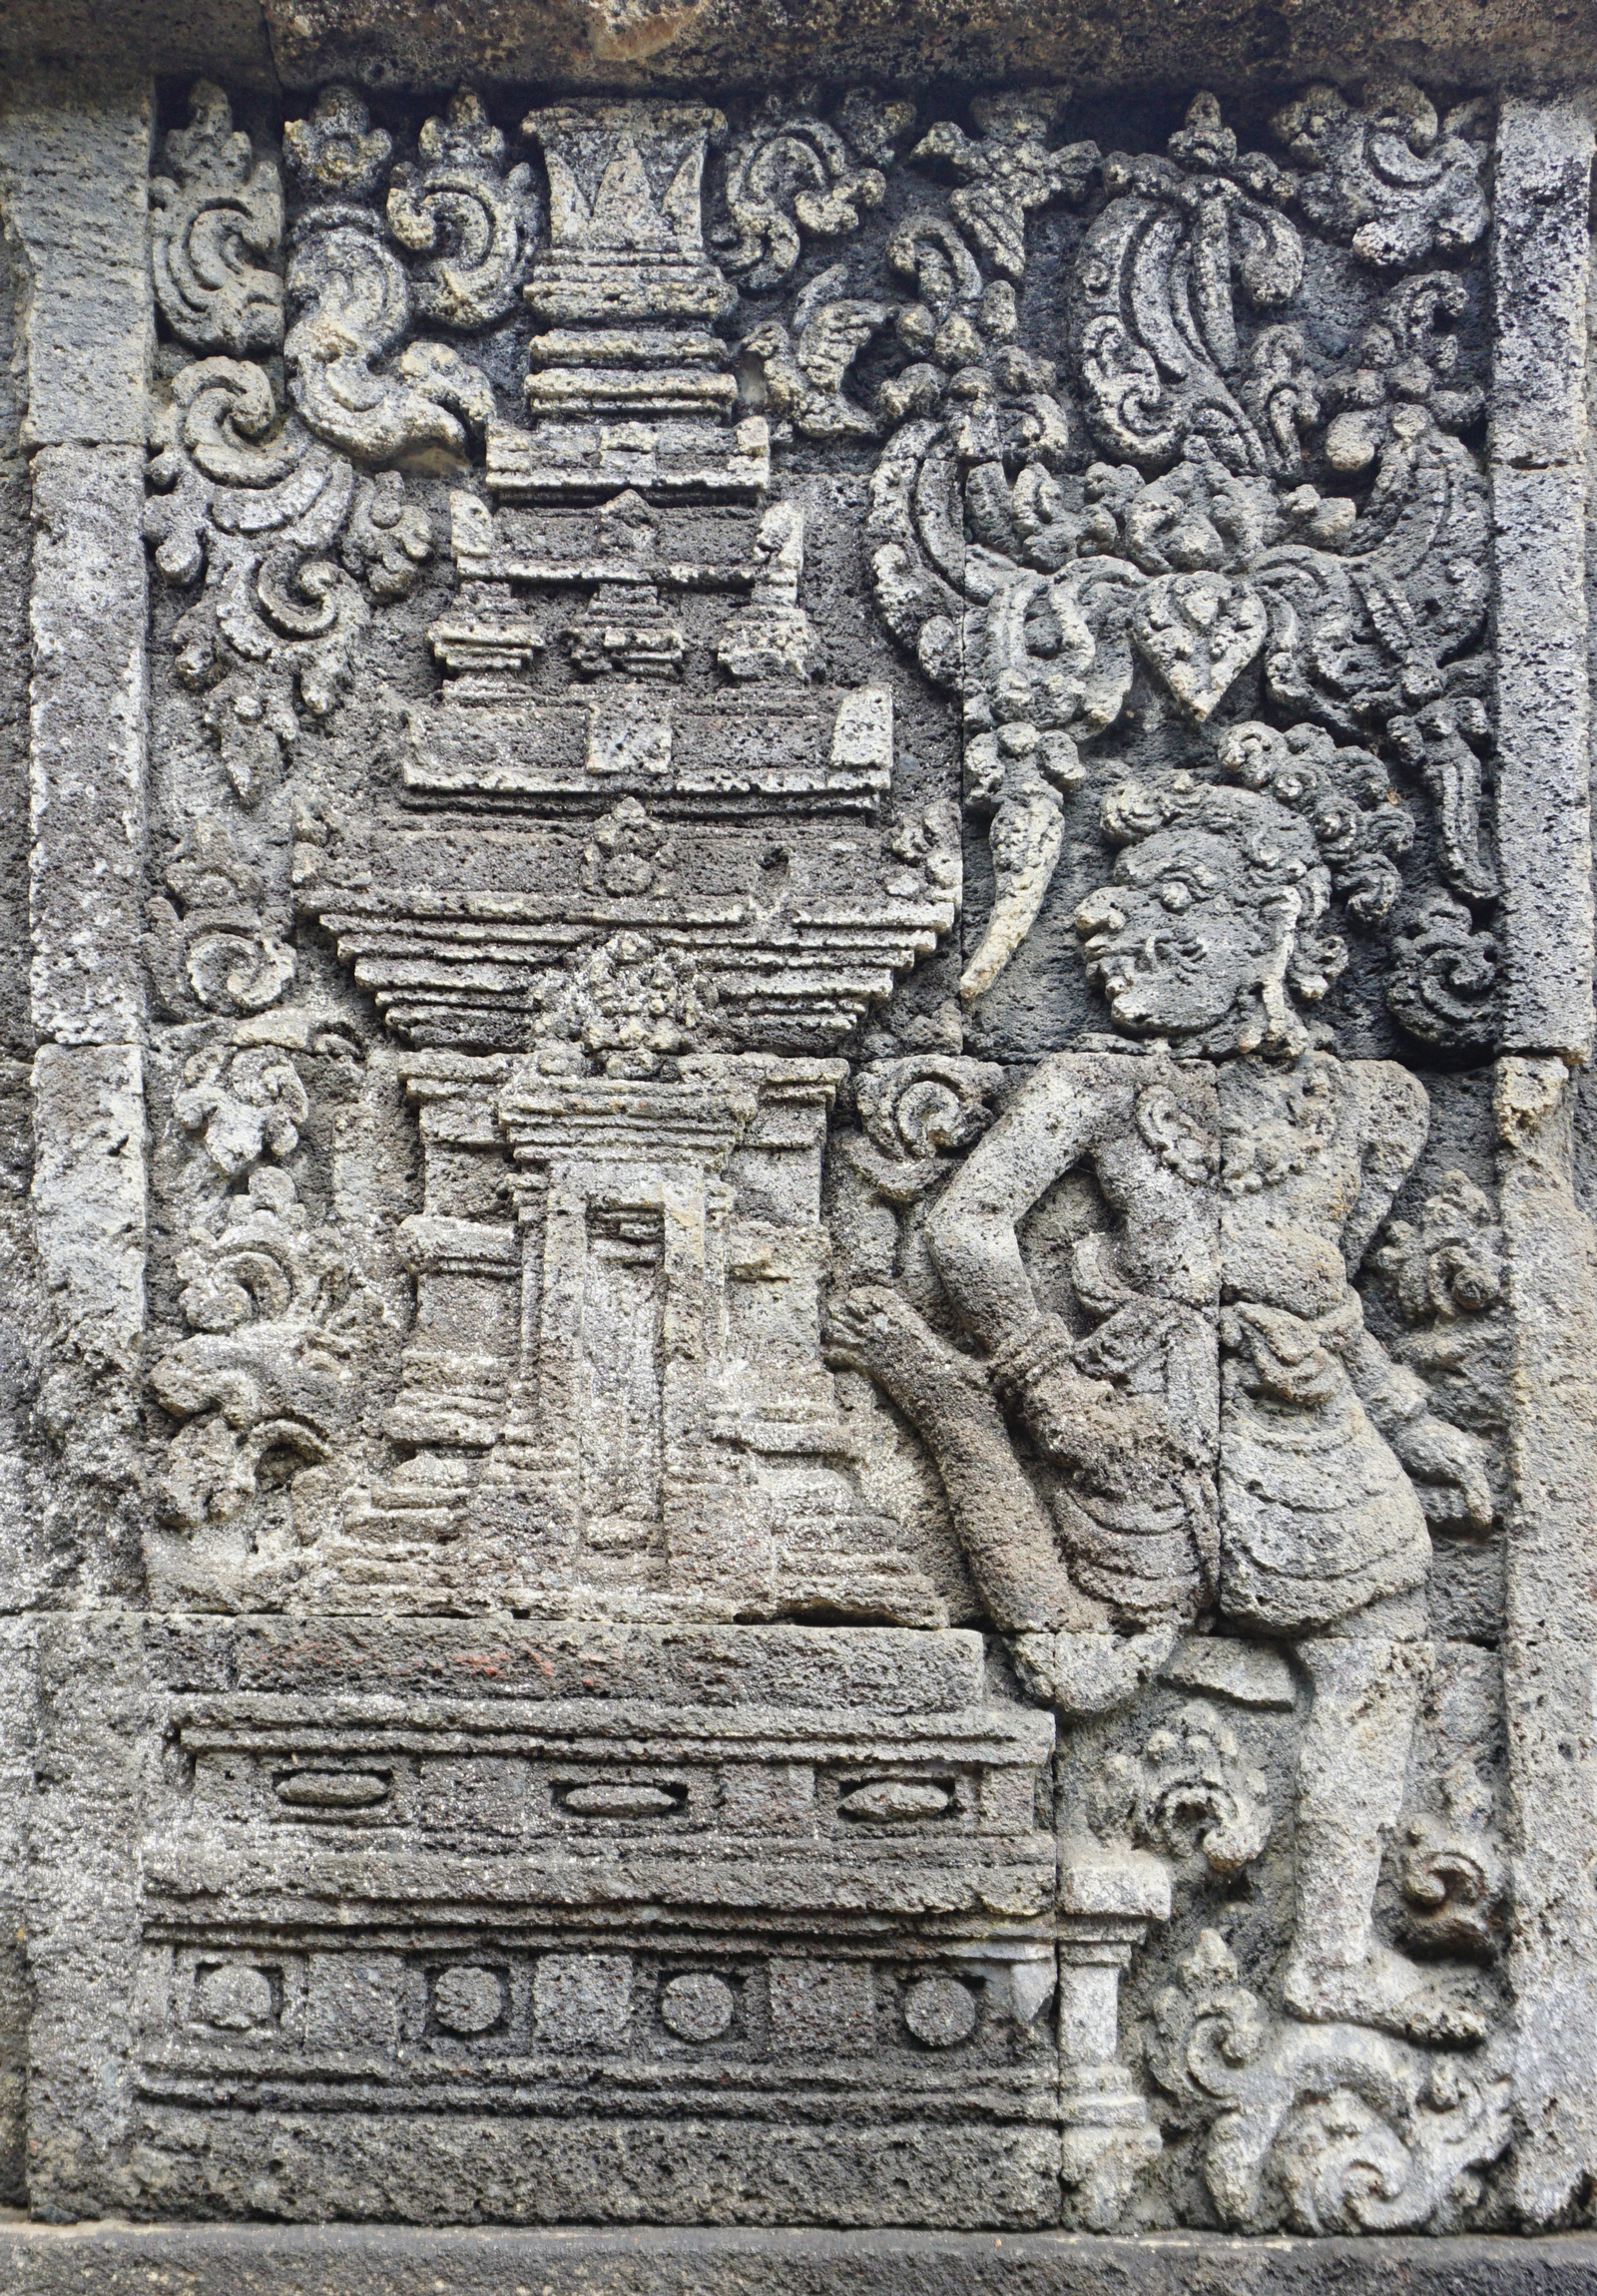 Relief showing sculpted model of Candi Penataran